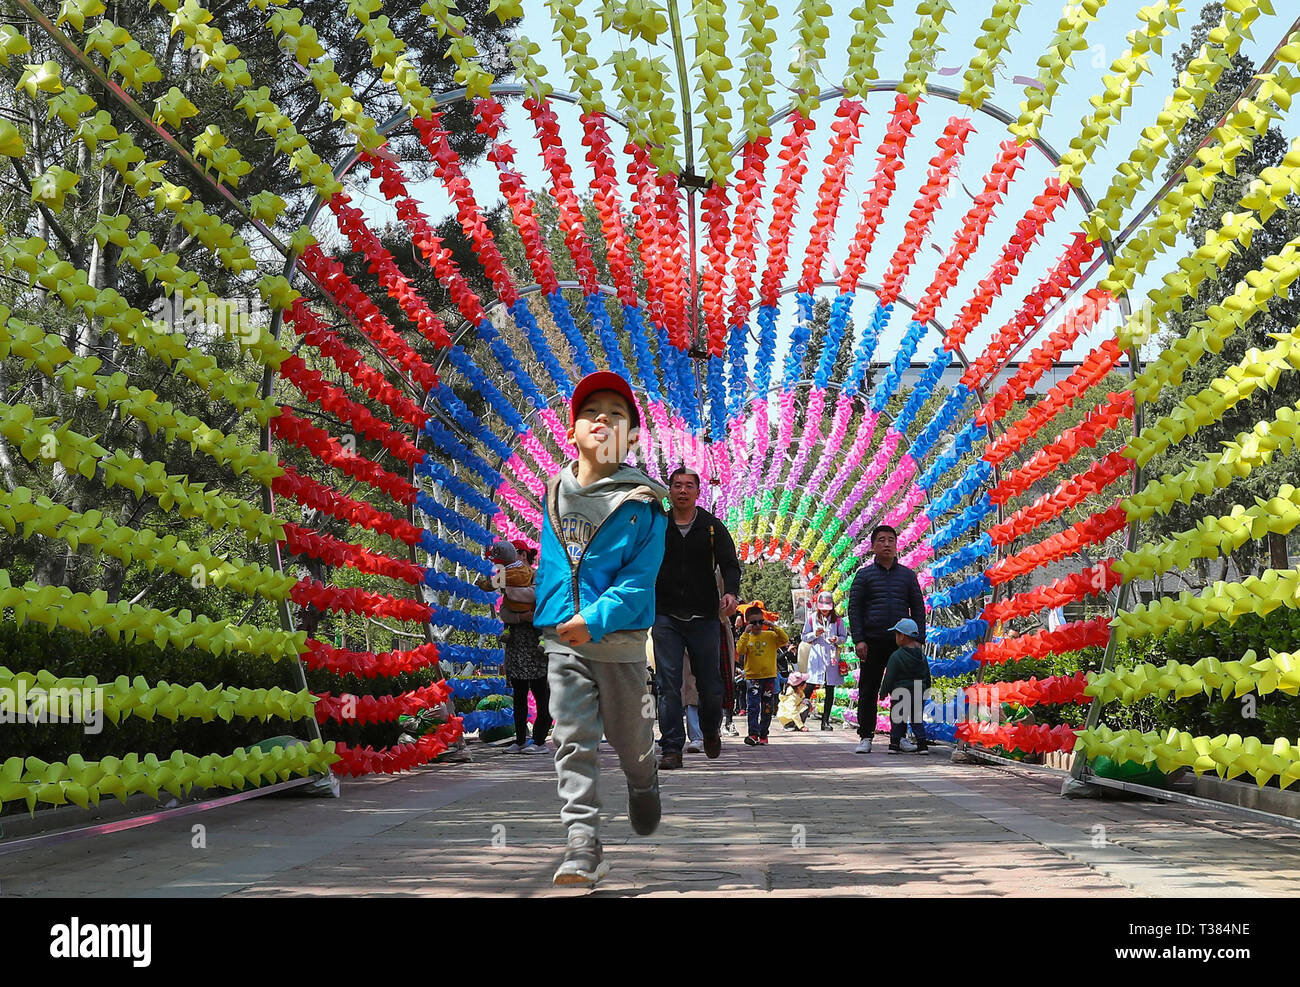 Beijing, Chine. Apr 7, 2019. Les touristes voir roulades pendant un virevent juste tenu à la China National Children's Centre à Beijing, capitale de la Chine, le 7 avril 2019. Credit : Zhang Yuwei/Xinhua/Alamy Live News Photo Stock